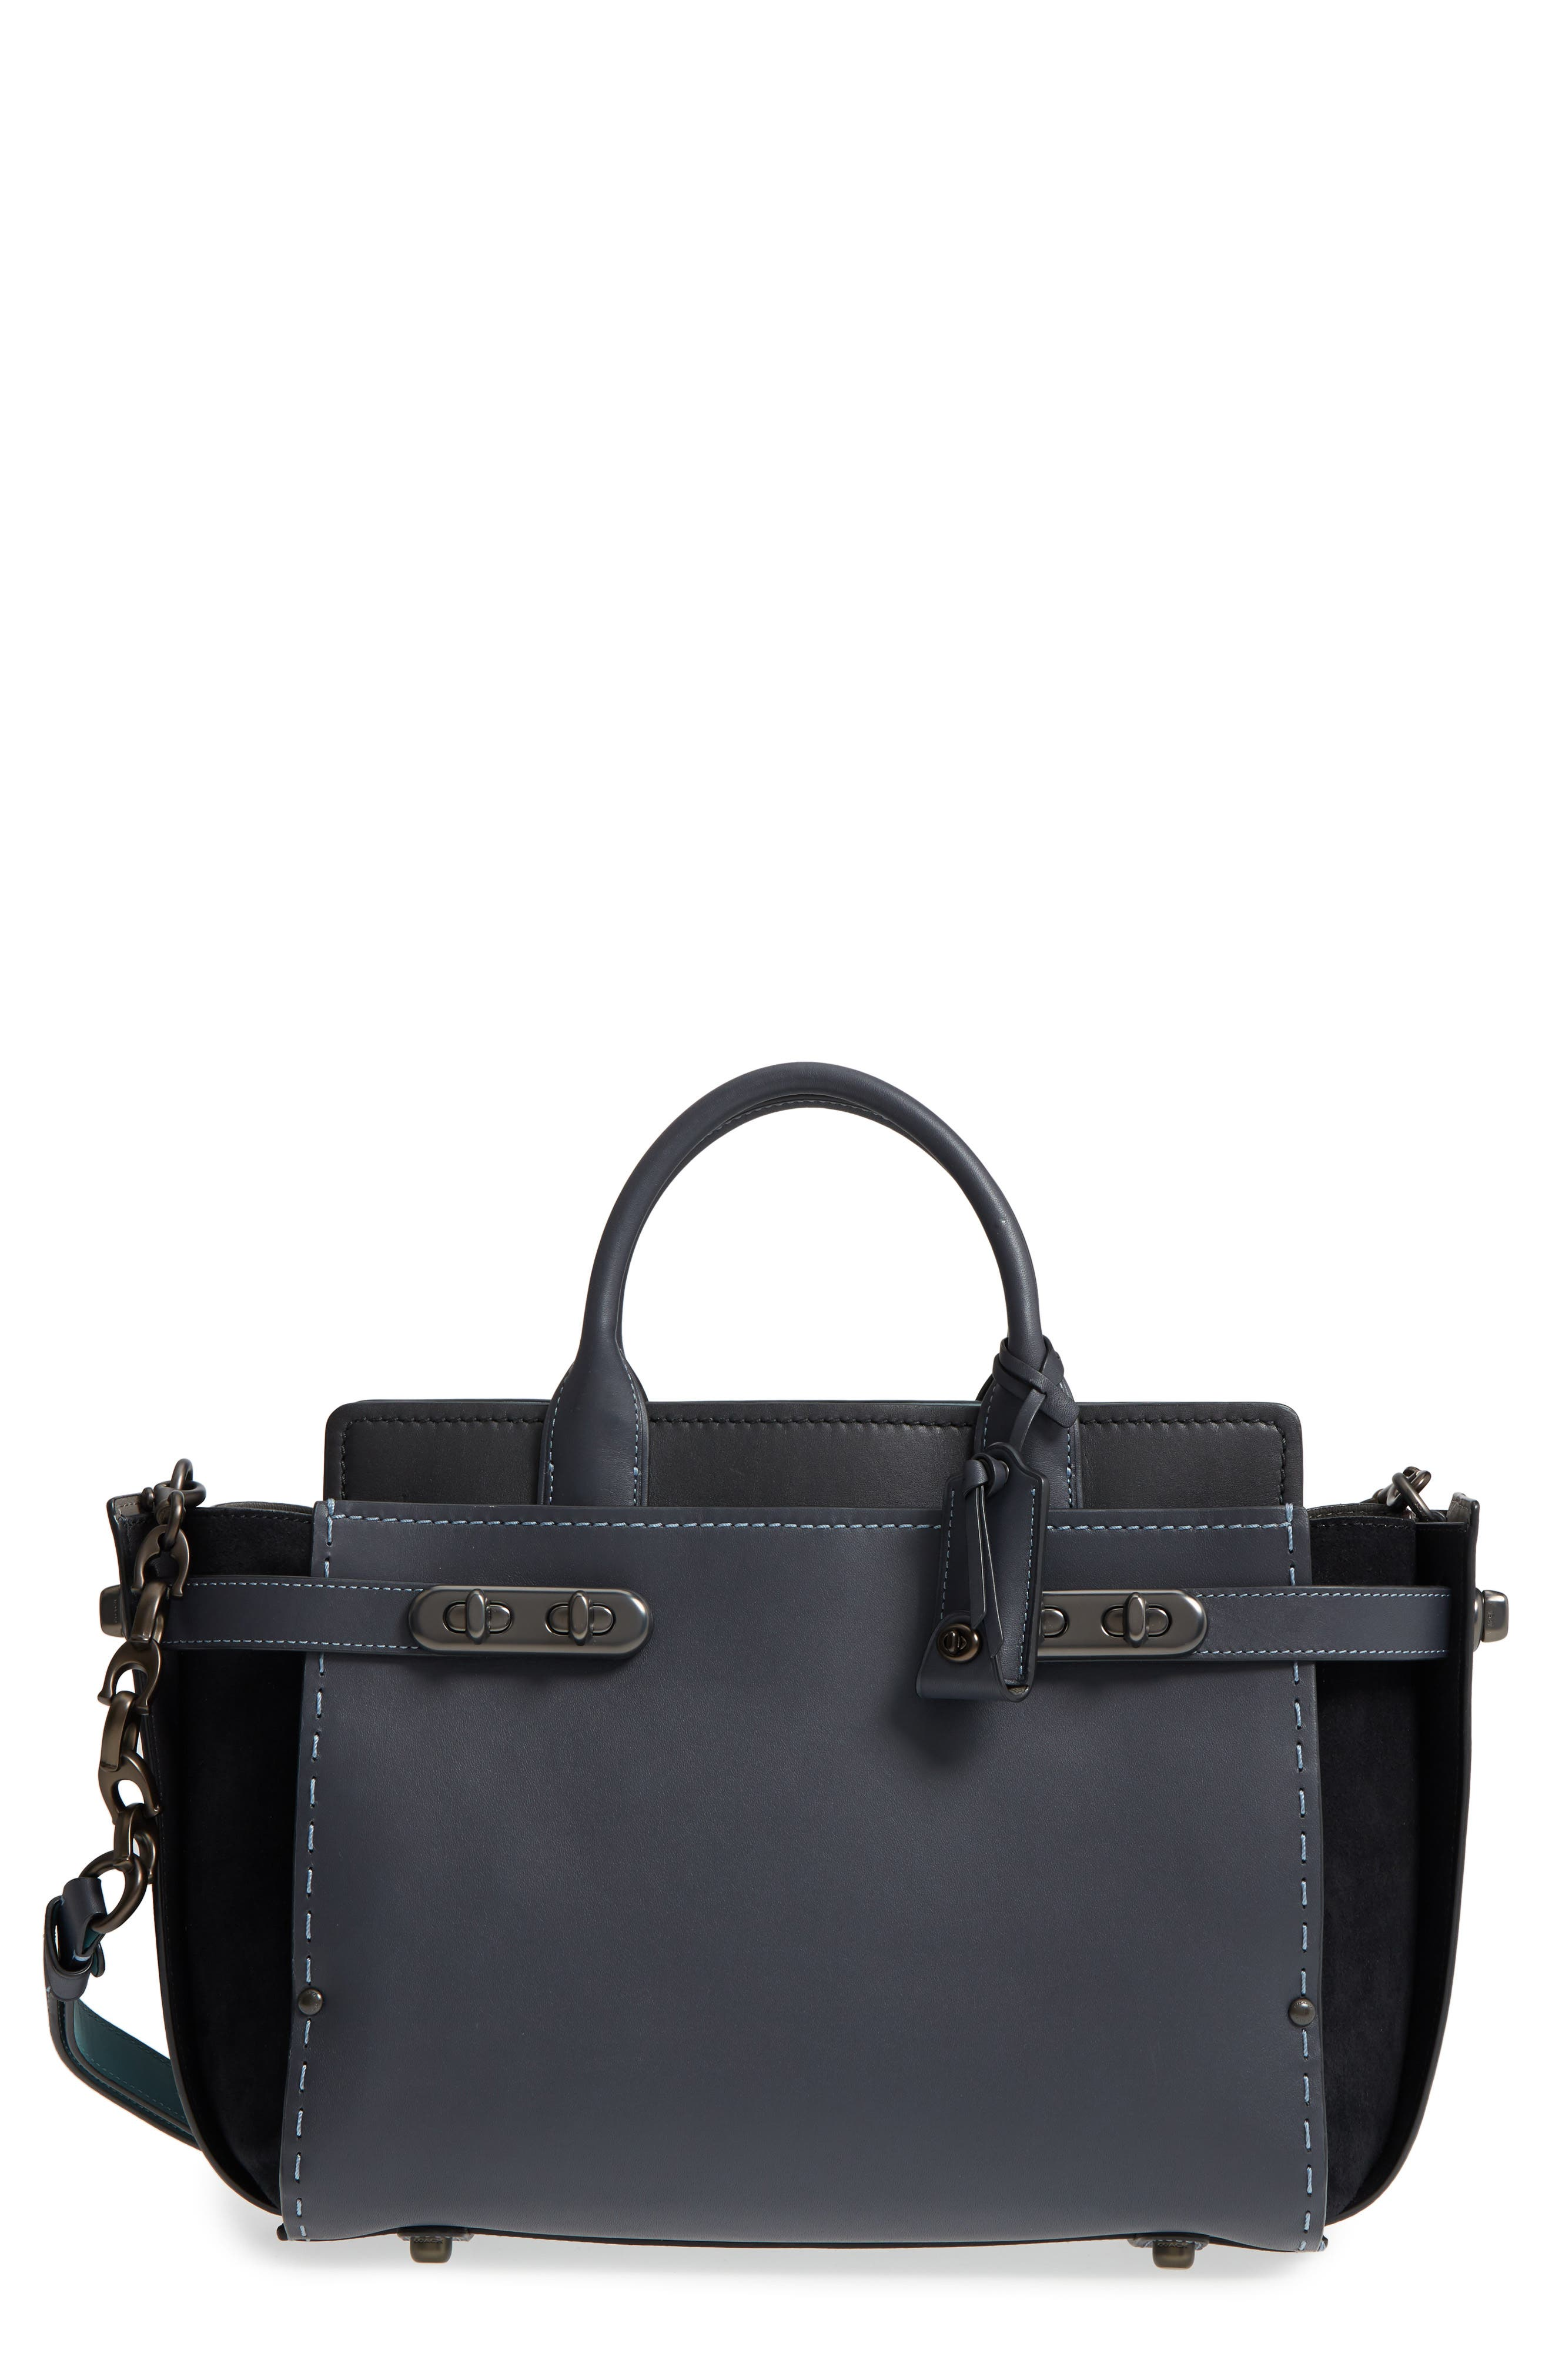 COACH 1941 Double Swagger Leather Satchel